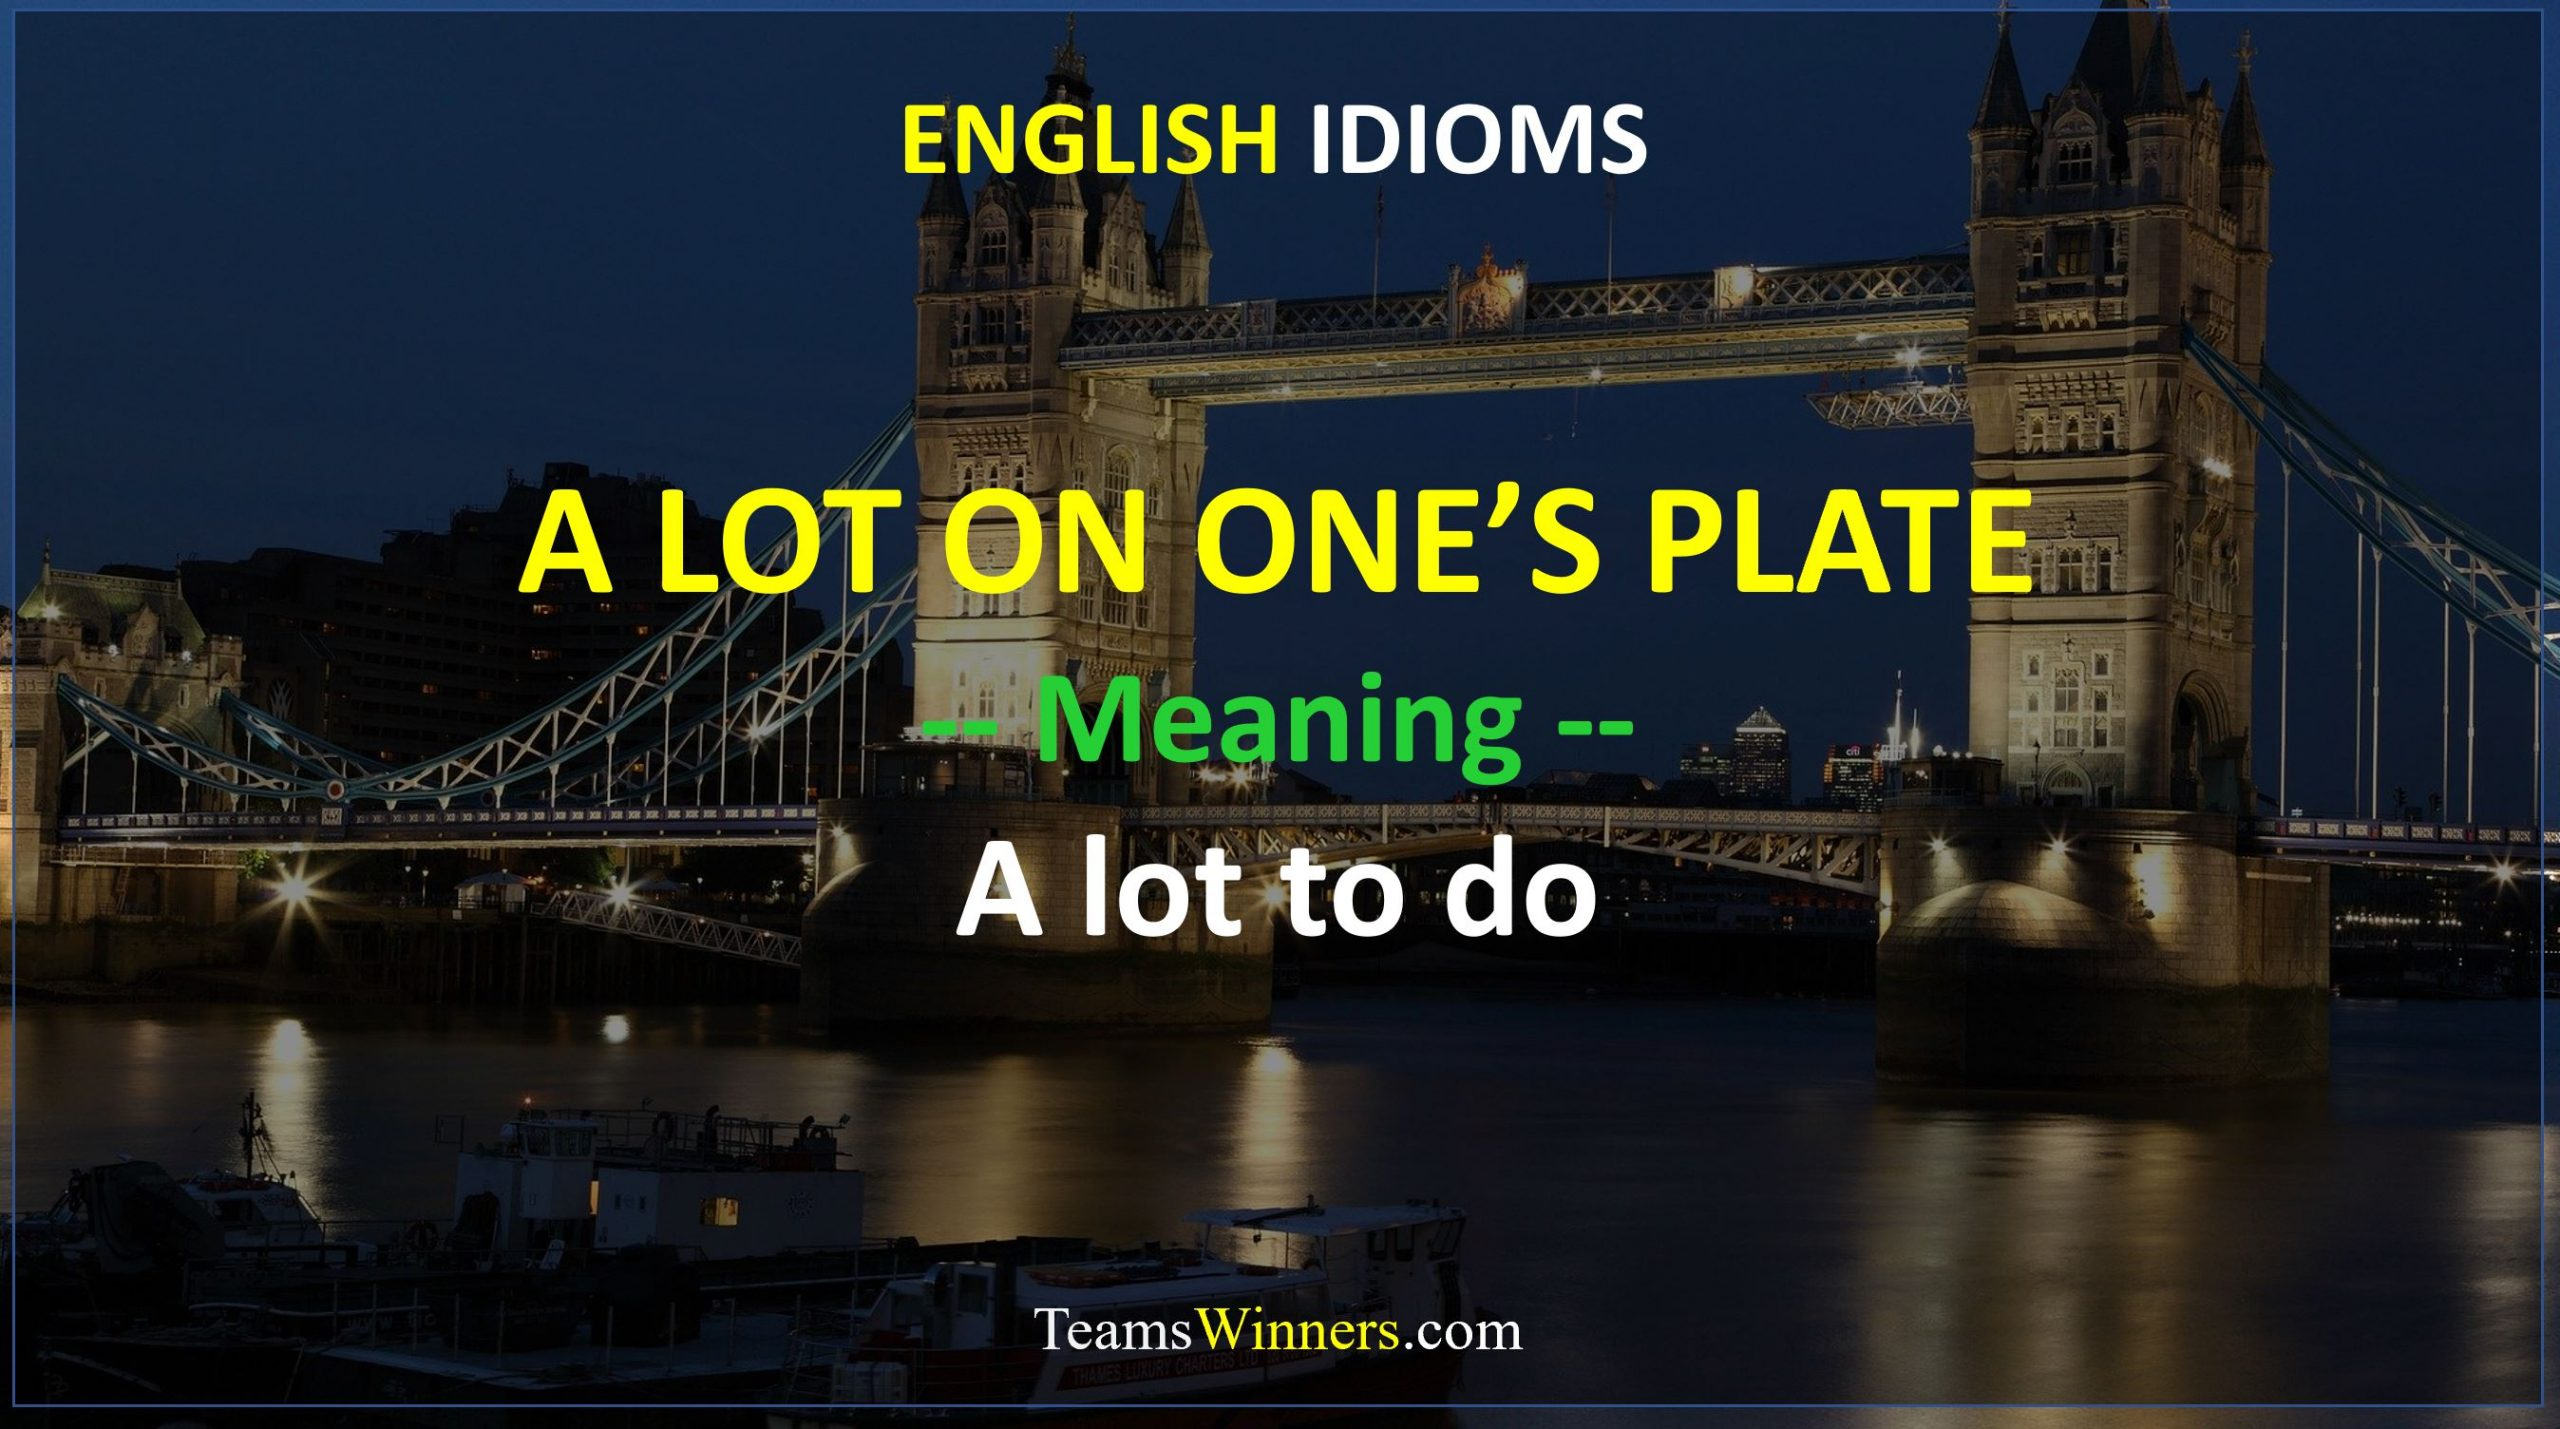 English Idiom - A Lot on One's Plate